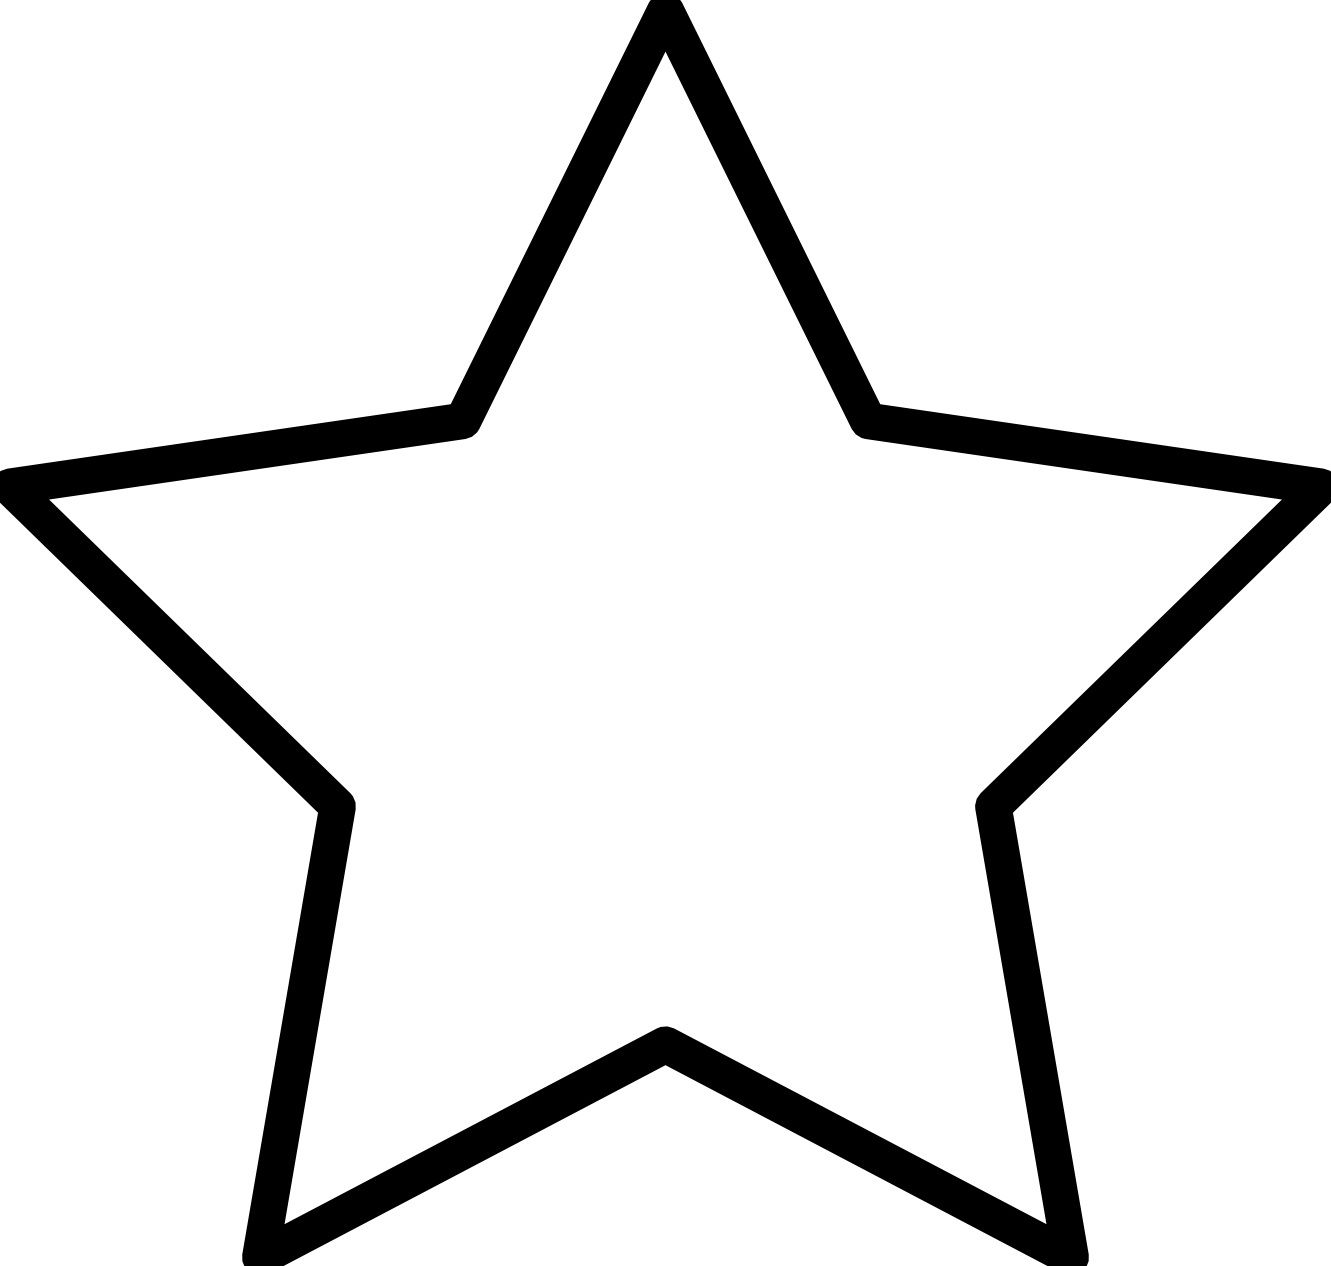 Star Coloring Pages Star Template Printable Star Coloring Pages Star Template